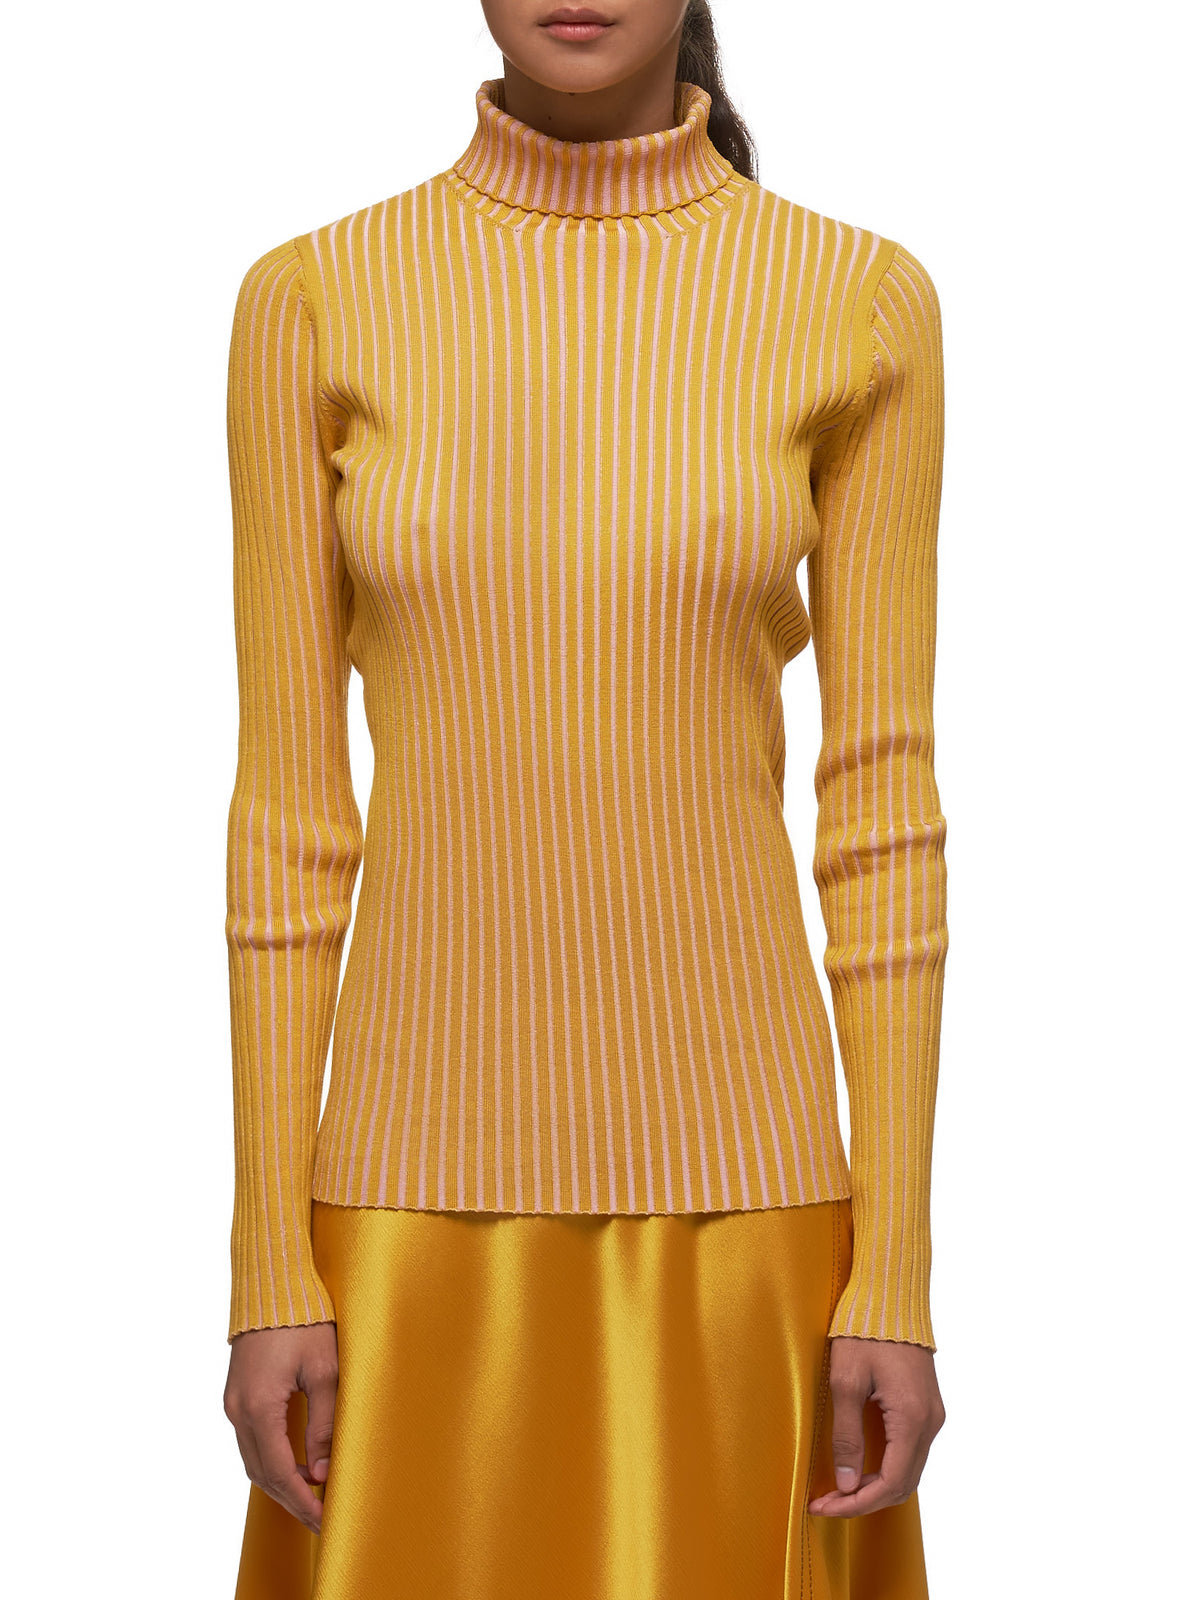 Victoire Silk Knit Turtleneck (15CI8077-YELLOW-PINK)